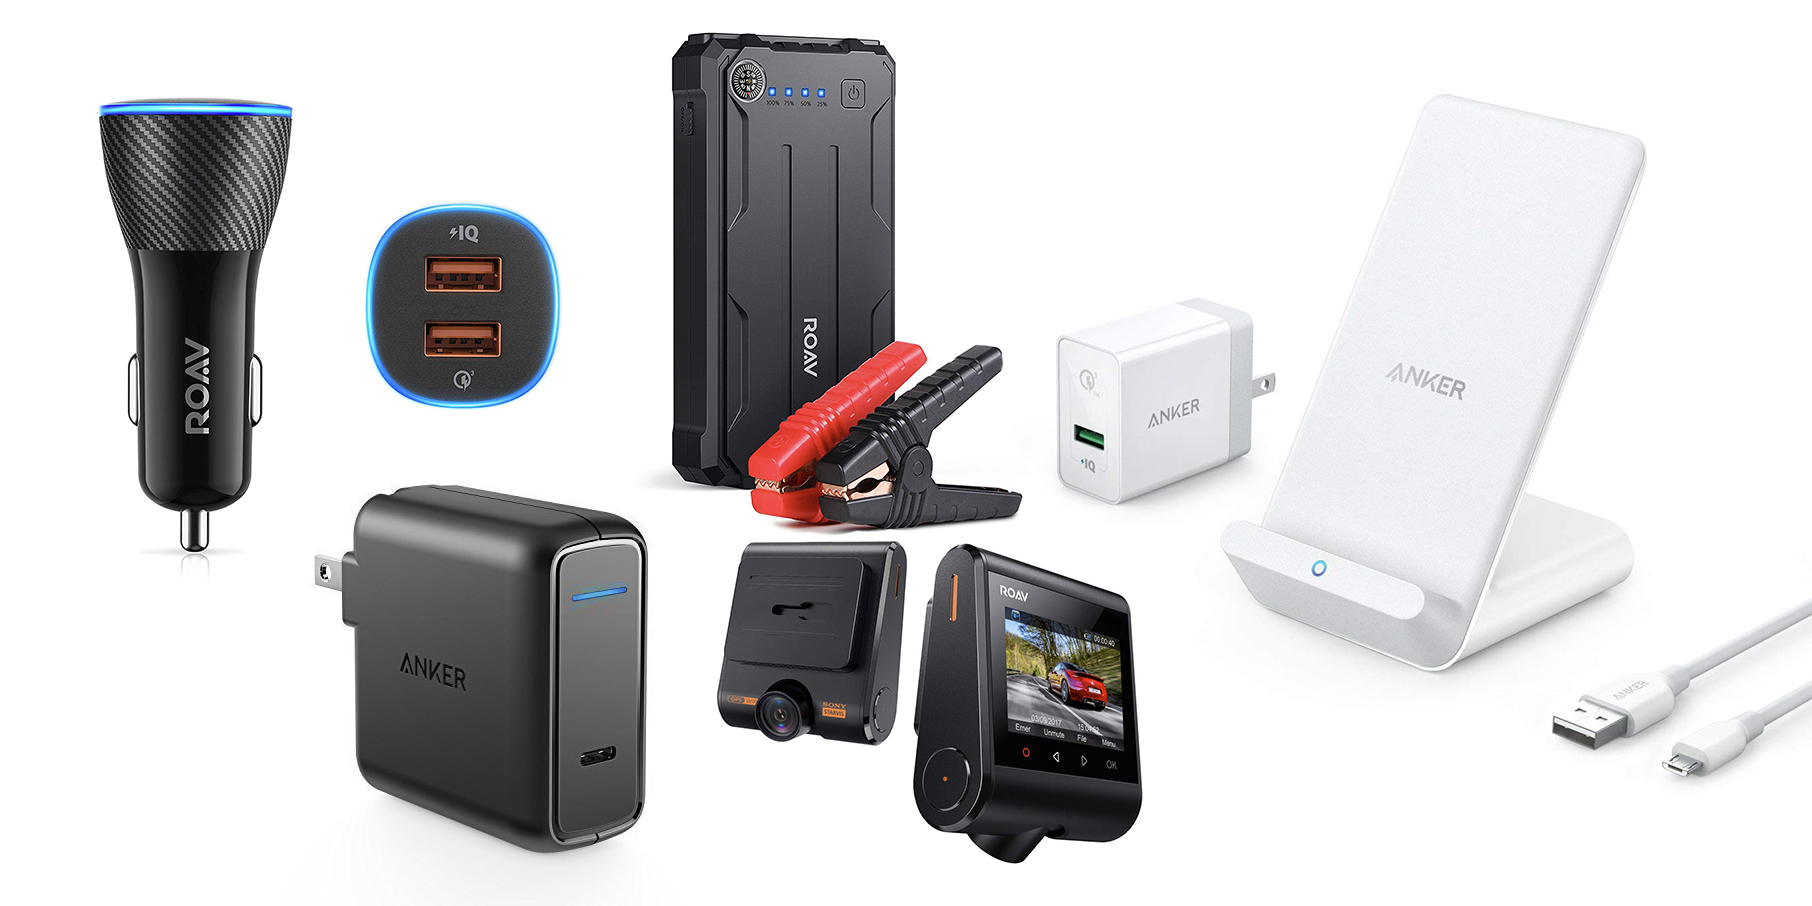 Anker PowerWave 10W Charging Bundle $40, USB-C gear, more from $16 in this week's deals